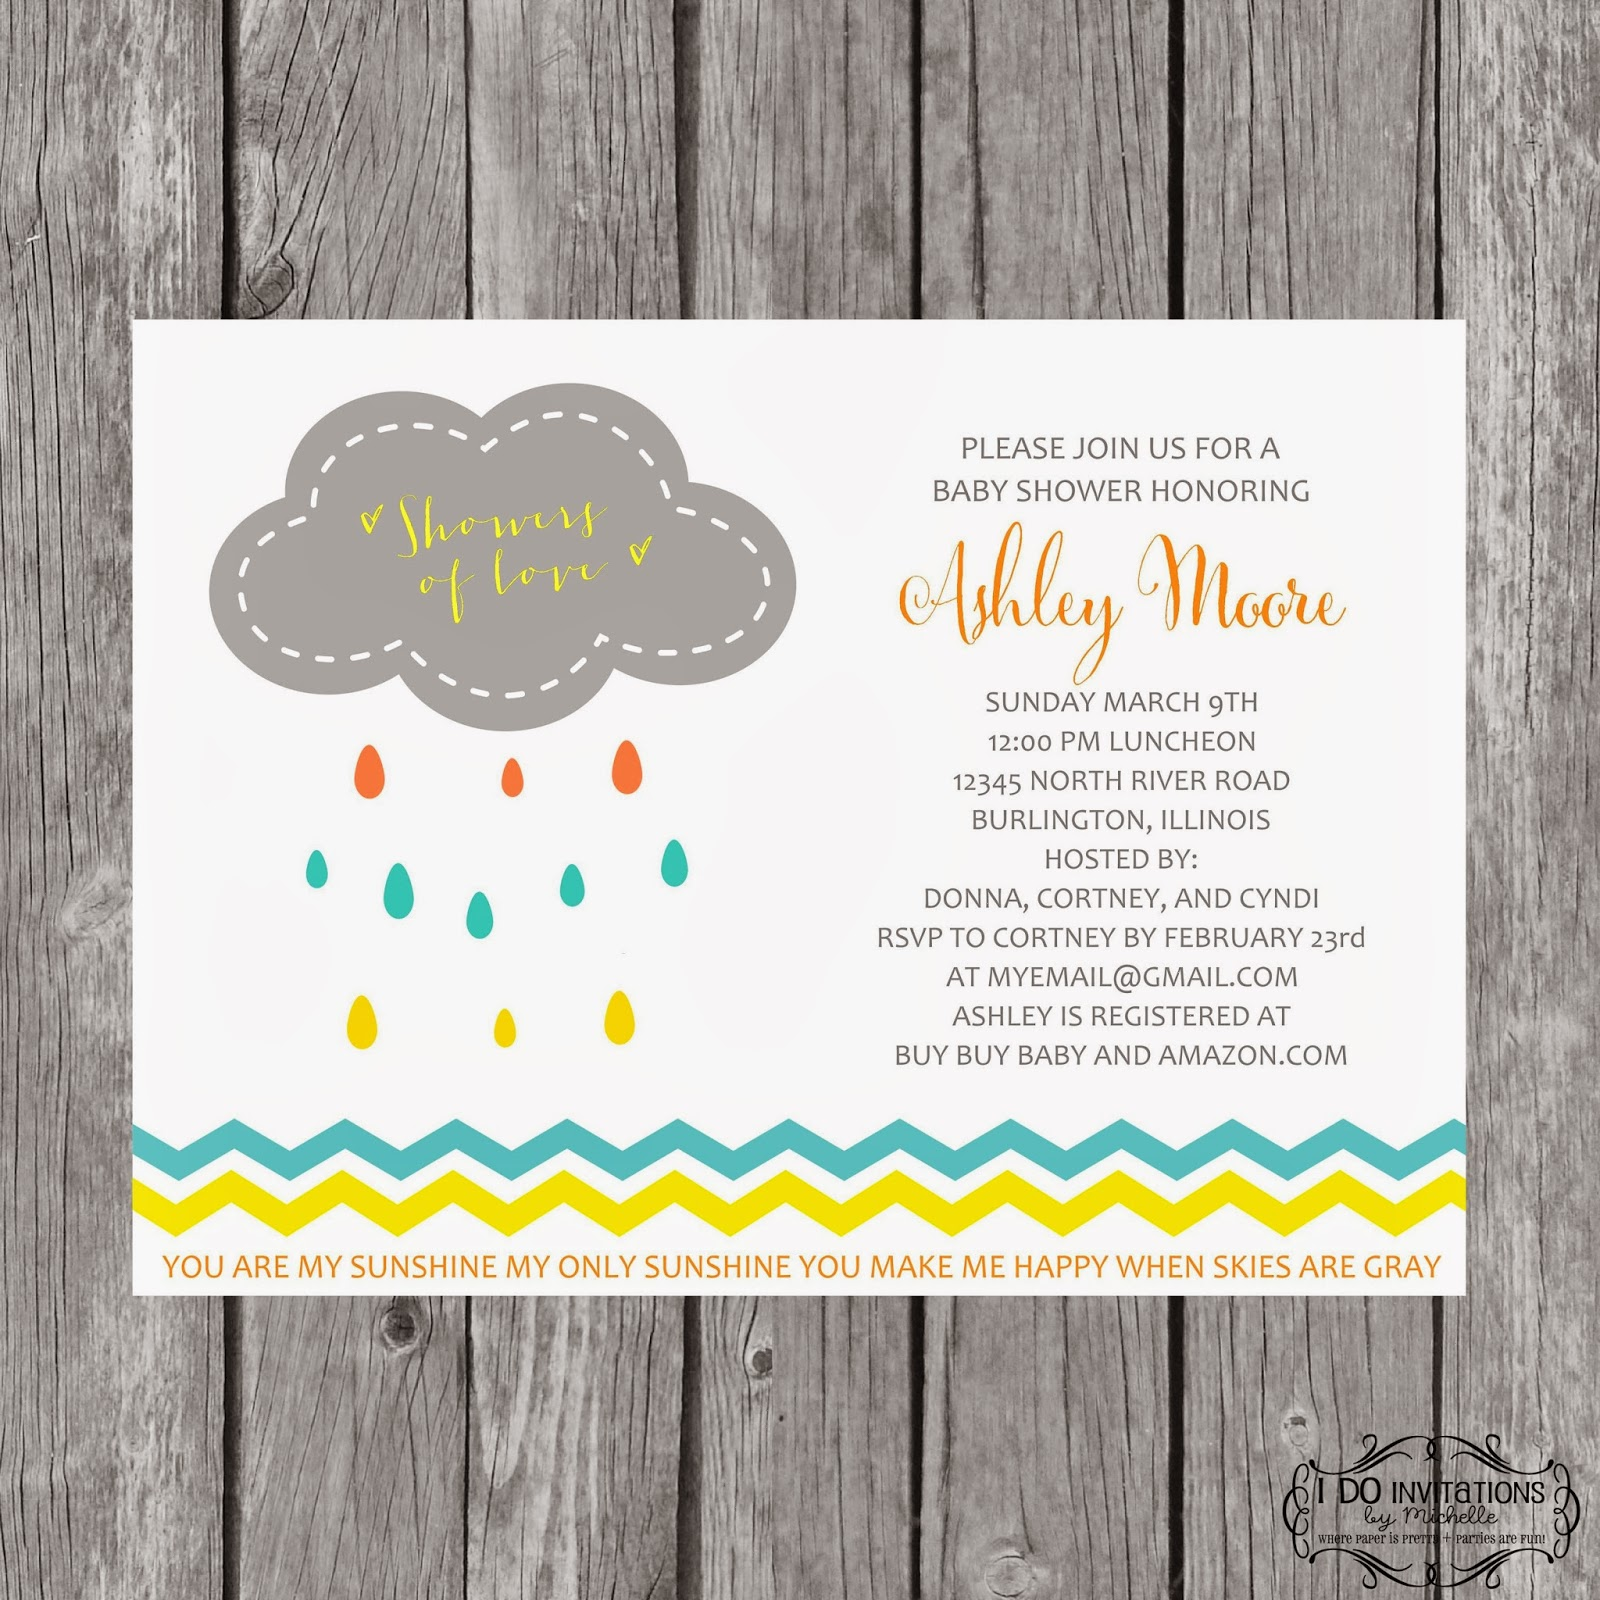 https://www.etsy.com/listing/176803345/rain-cloud-baby-shower-invitation-you?ref=listing-shop-header-1